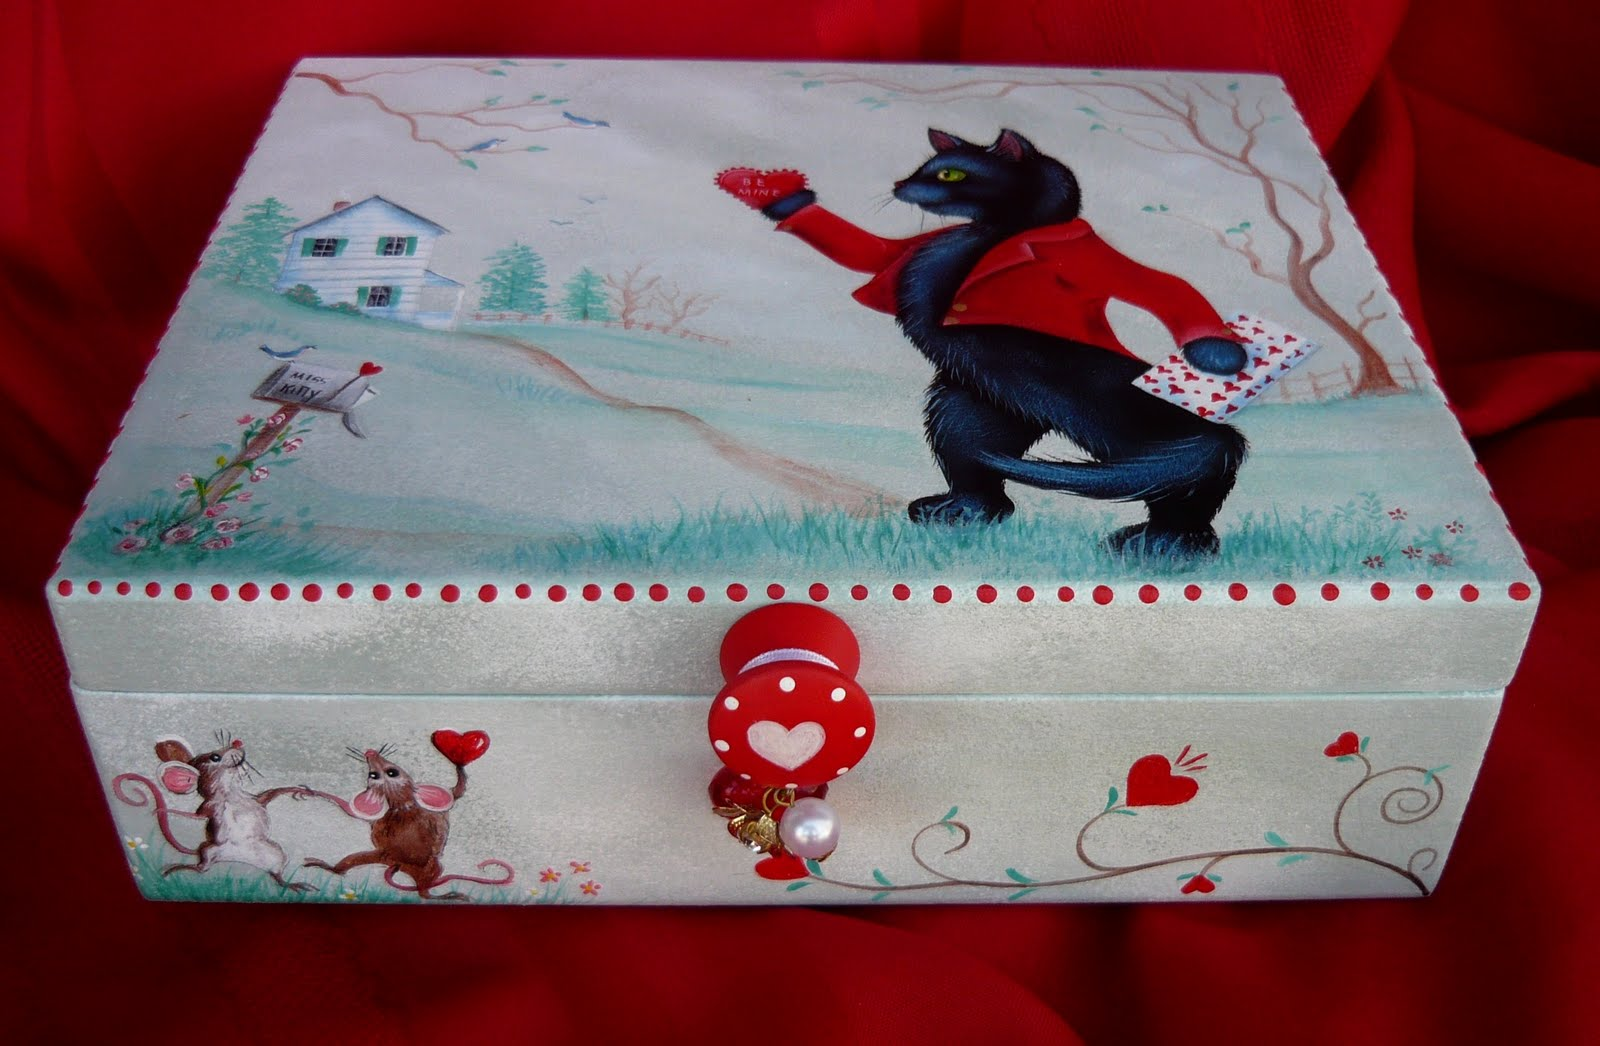 happy new year everyone its been a busy season im happy to say i am back to painting and am offering an original black cat valentine box